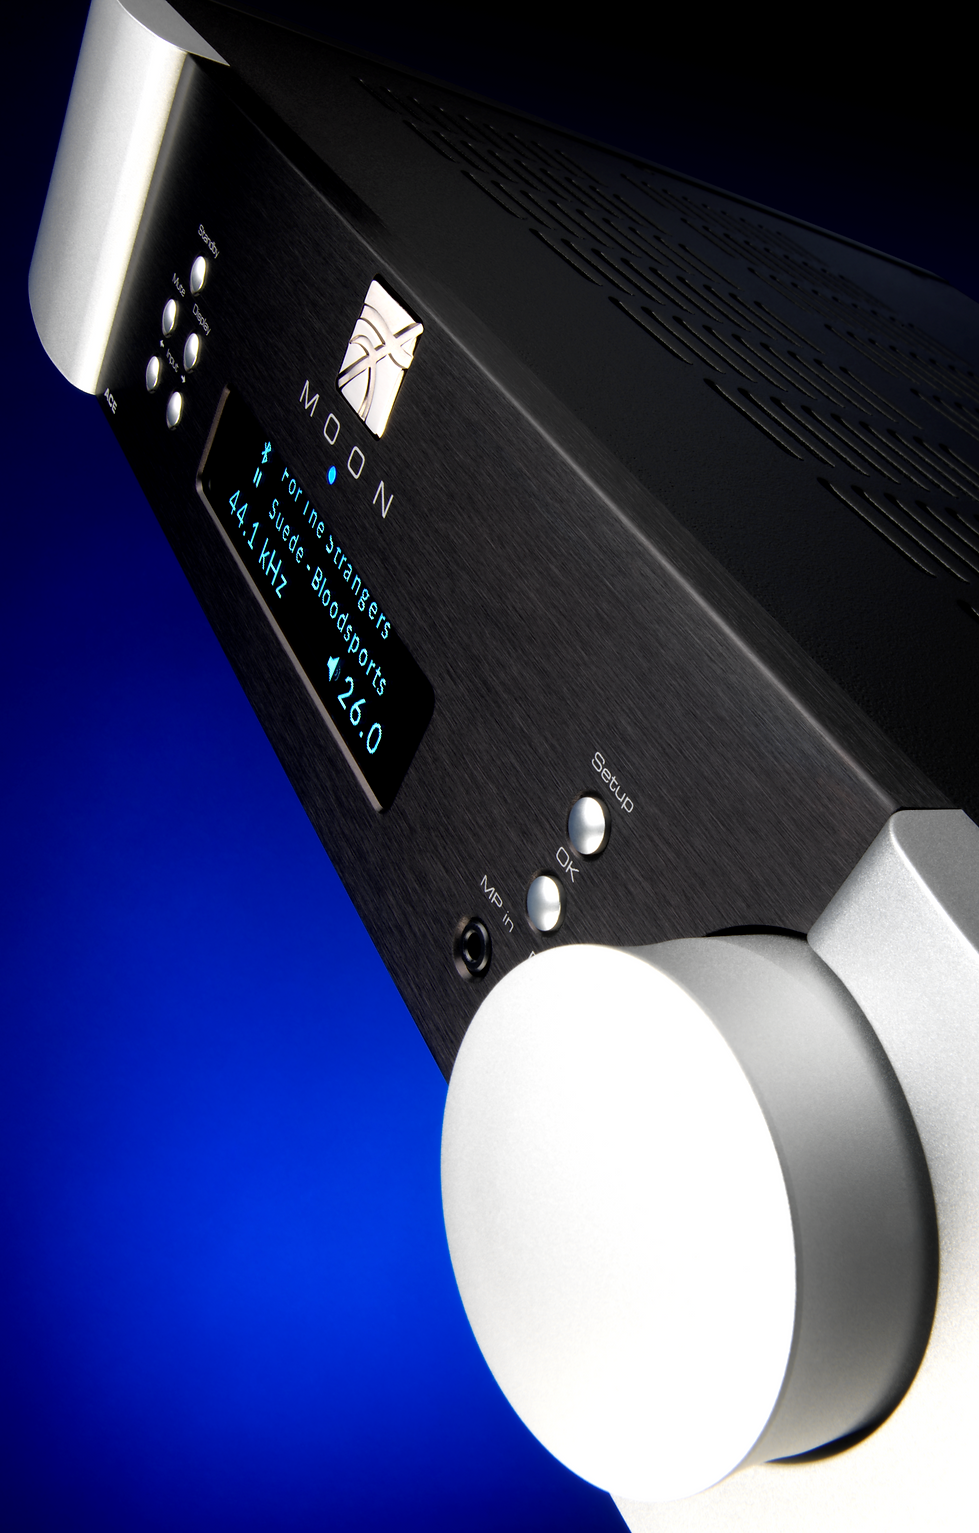 Moon Neo Ace streaming amplifier,